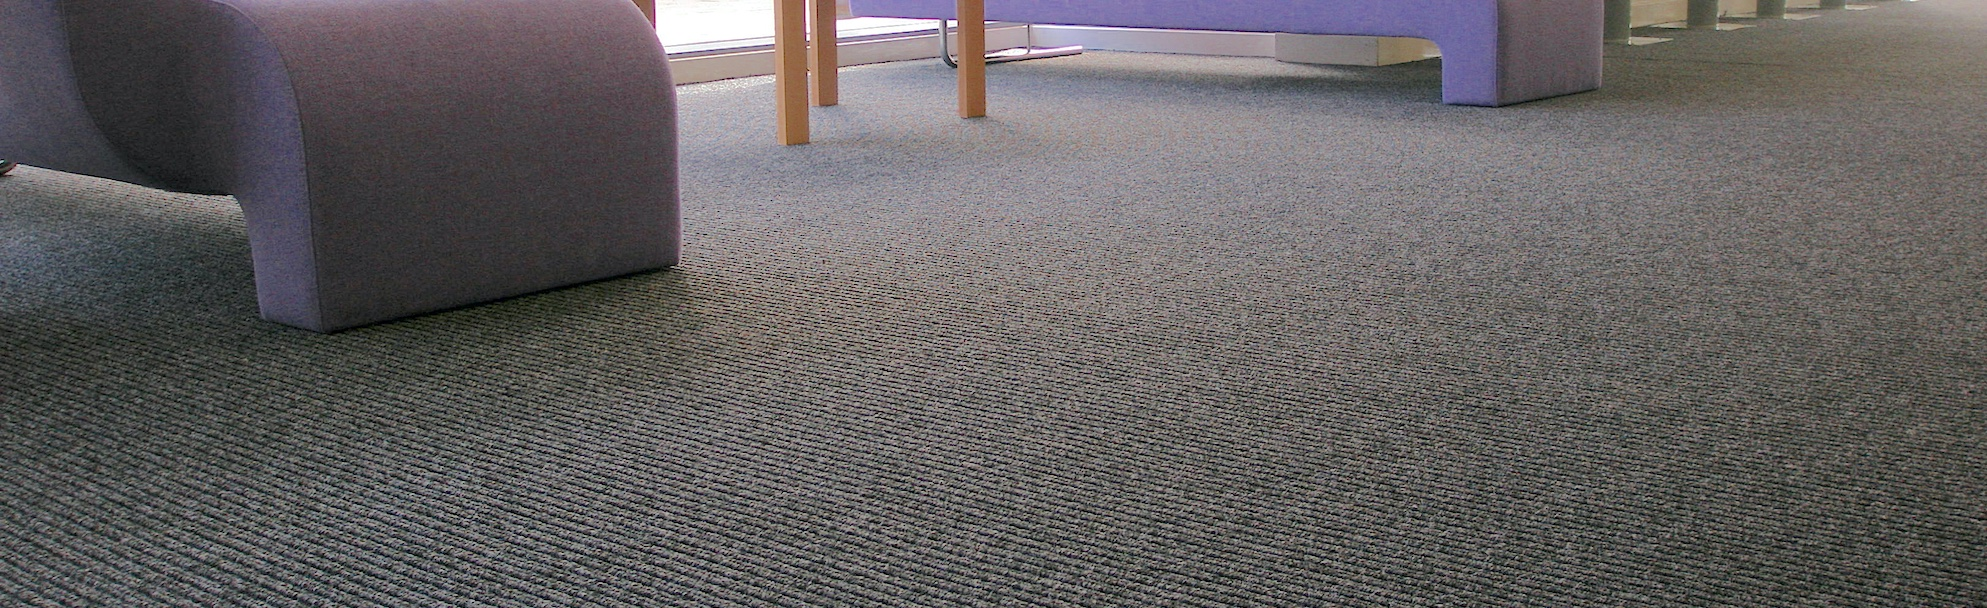 Heckmondwike | Commercial Carpet and Carpet Tiles | Battleship/Hippo